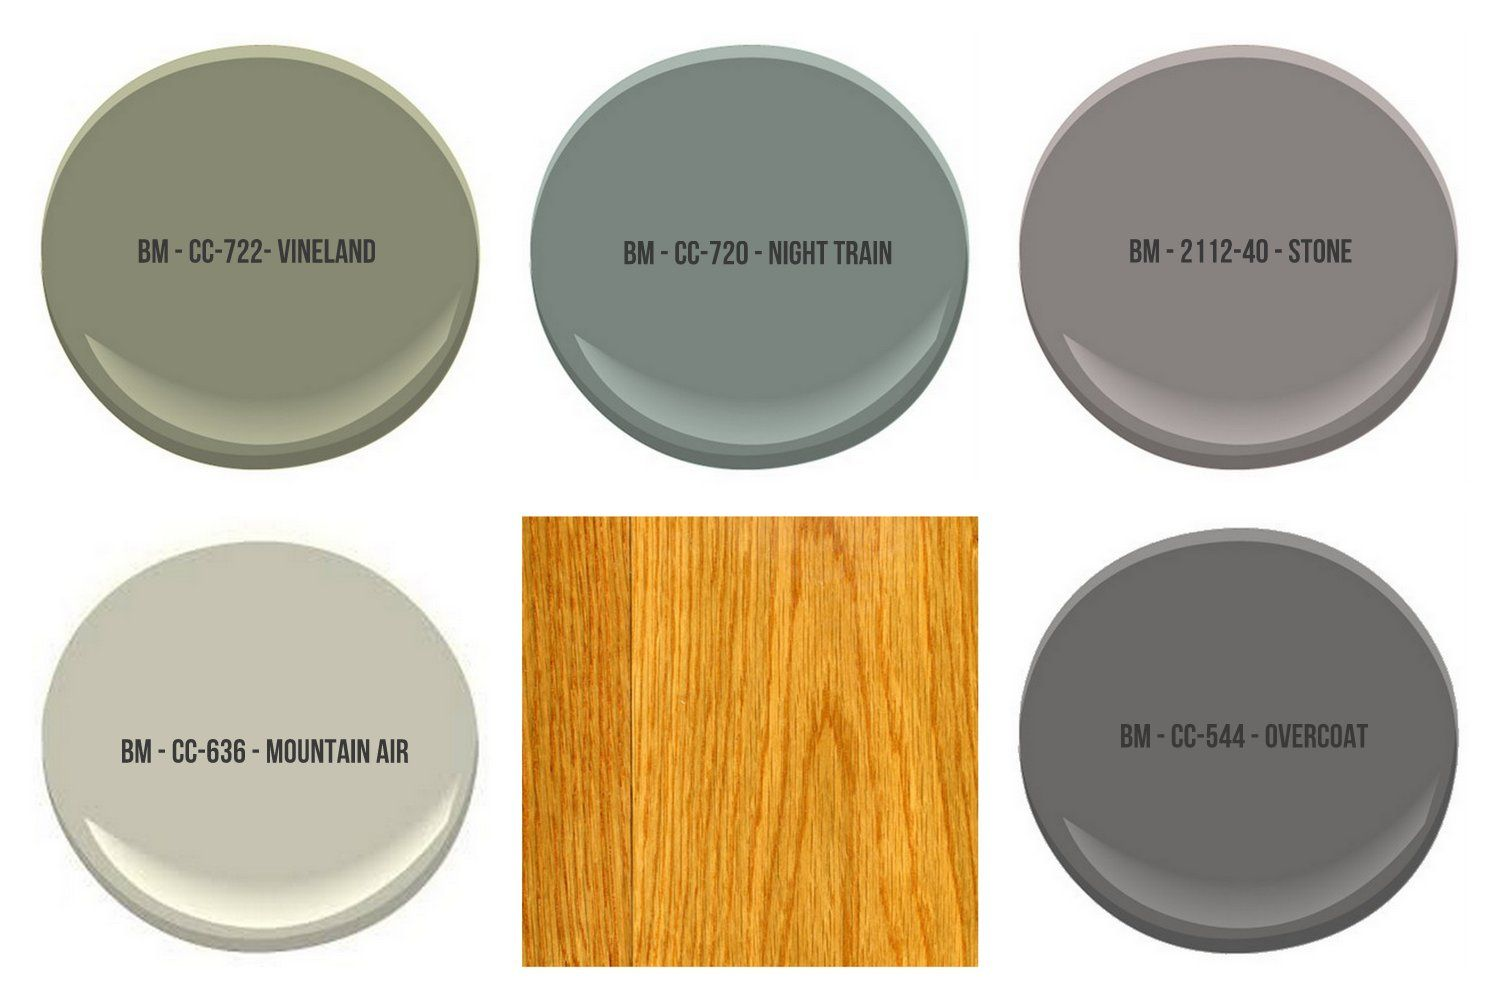 The Best Wall Paint Colors To Go With Honey Oak Honey Oak Cabinets Benjamin Moore And Honey